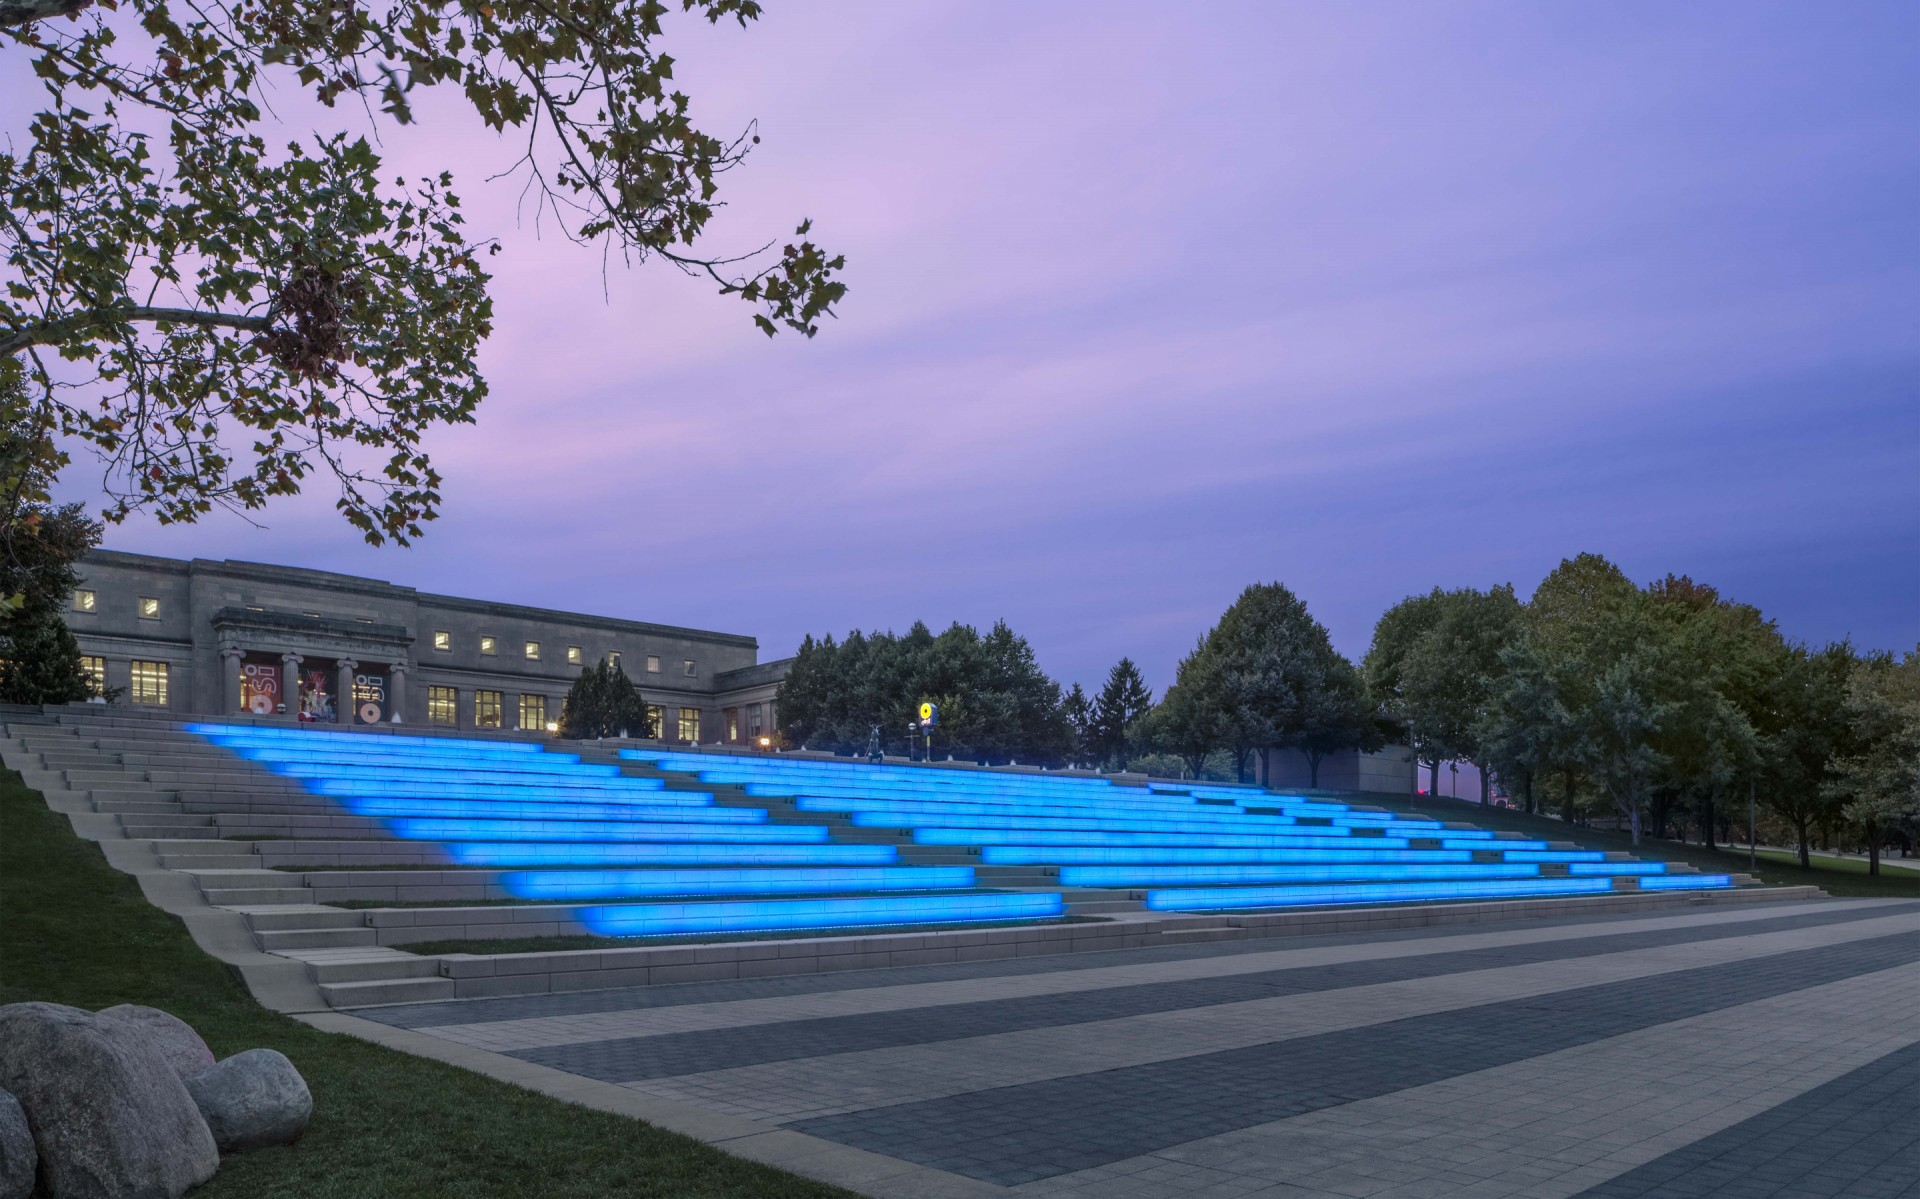 Lighting designers, Illumination Arts, have created a lighting scheme that is both a tribute and an attraction, rebranding the amphitheater as a welcoming, multi-use space.  – Feinknopf Photography